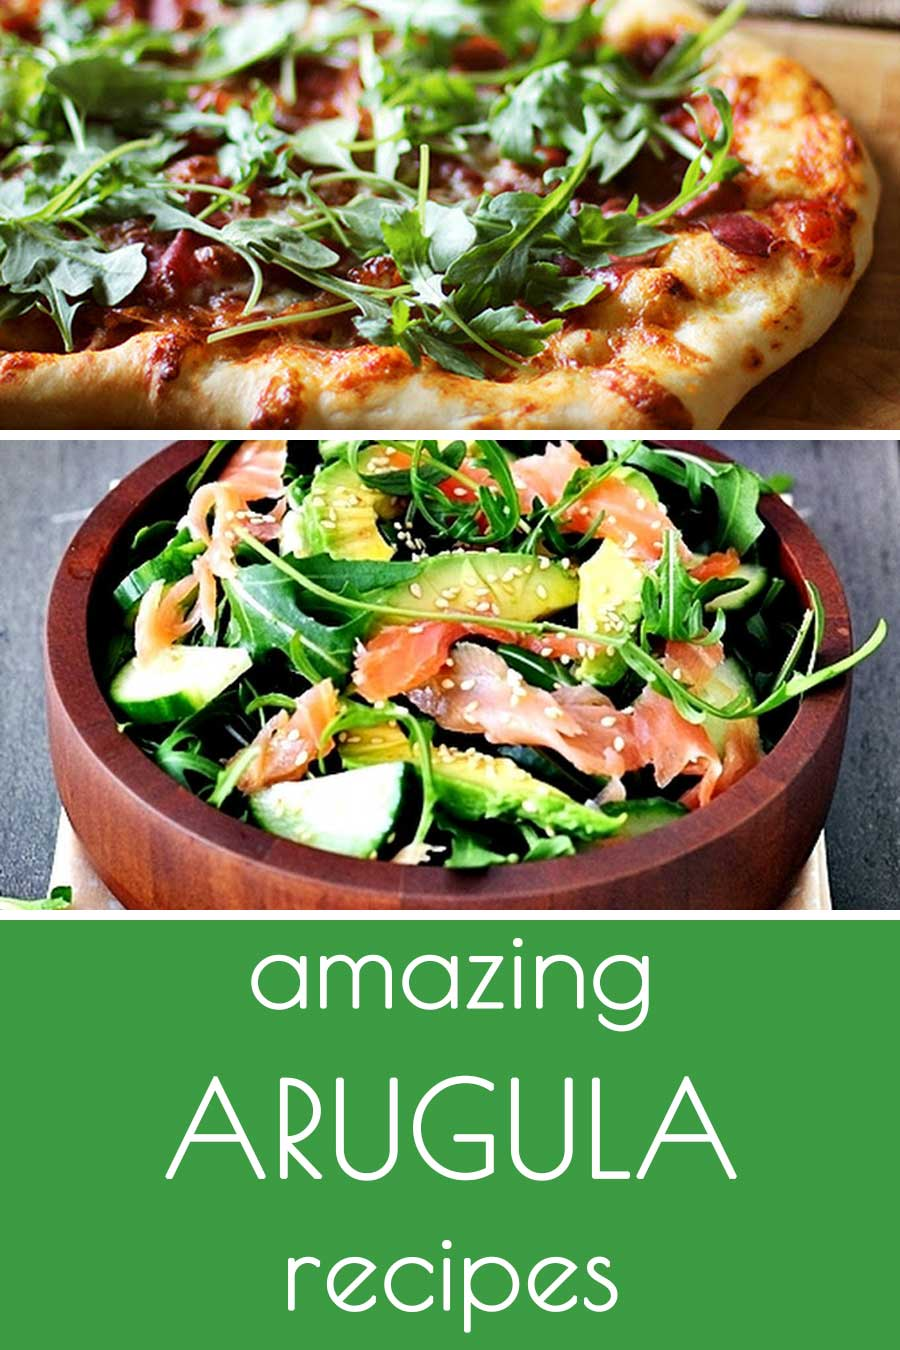 22 amazing arugula recipes